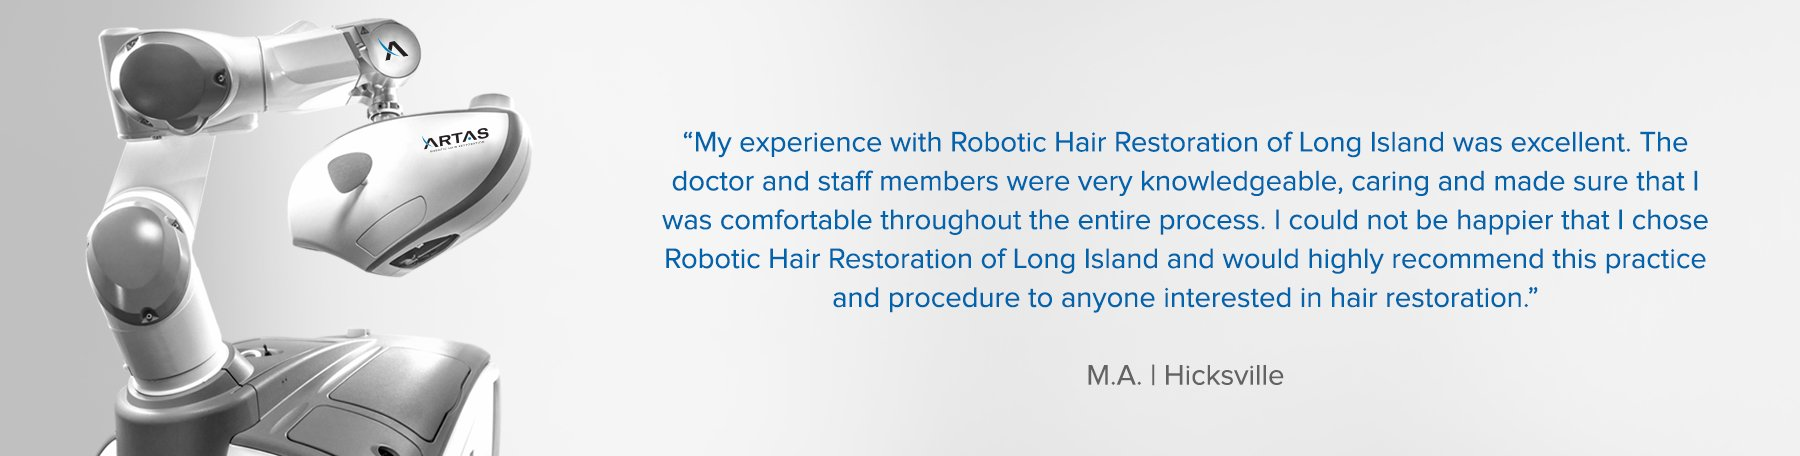 Robotic Hair Restoration Artas Long Island